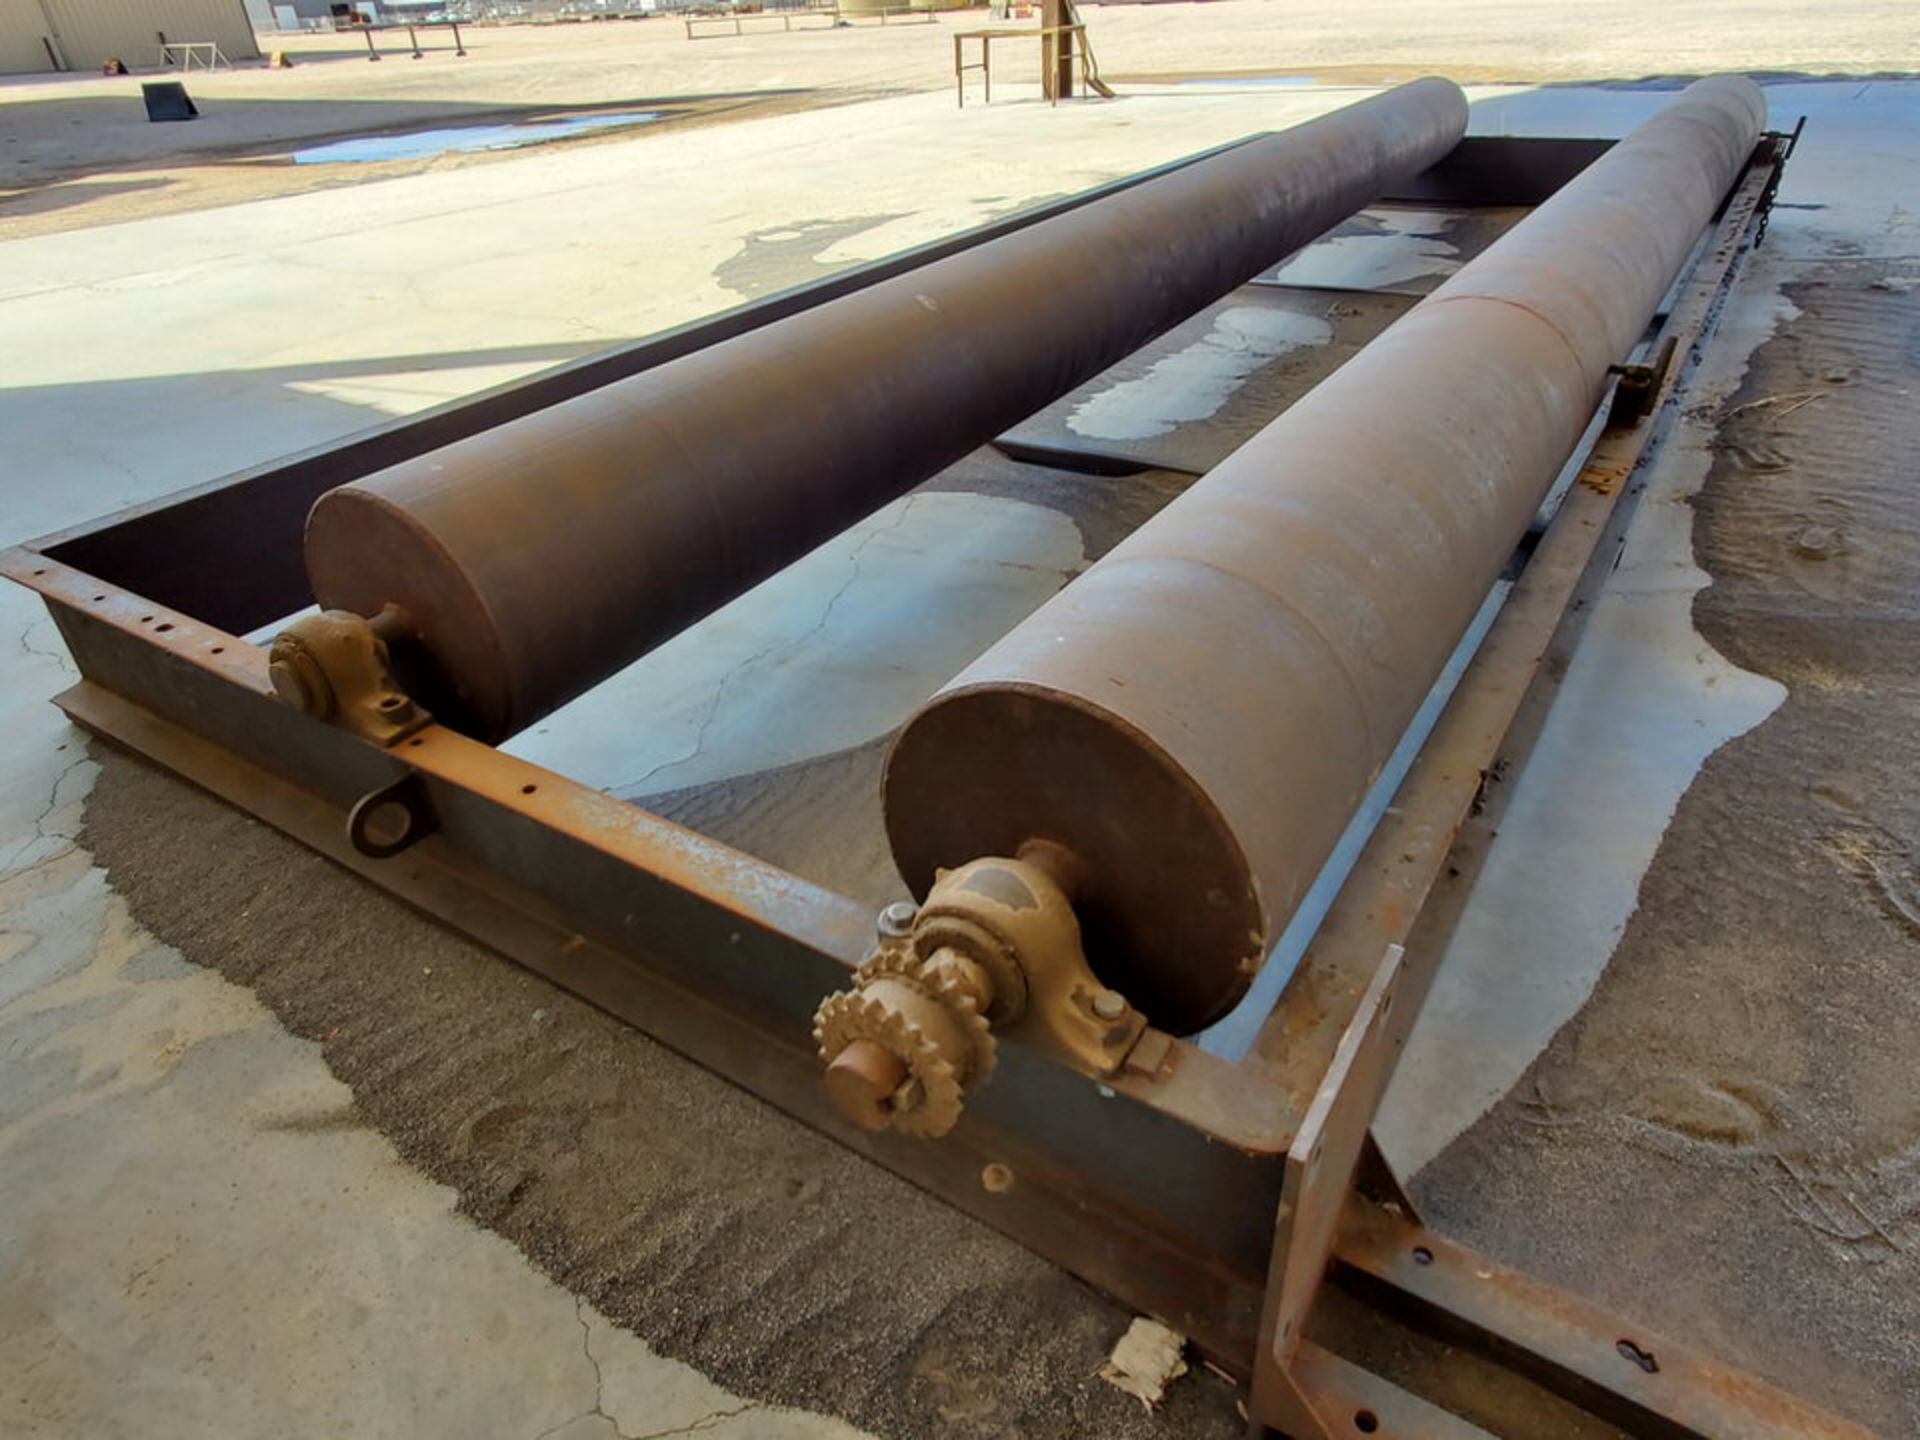 """Turn Roll 8' x 20'6"""", 16"""" O.D. Rolls, 1' Base; Overall Dims: 9'8""""W - Image 6 of 8"""